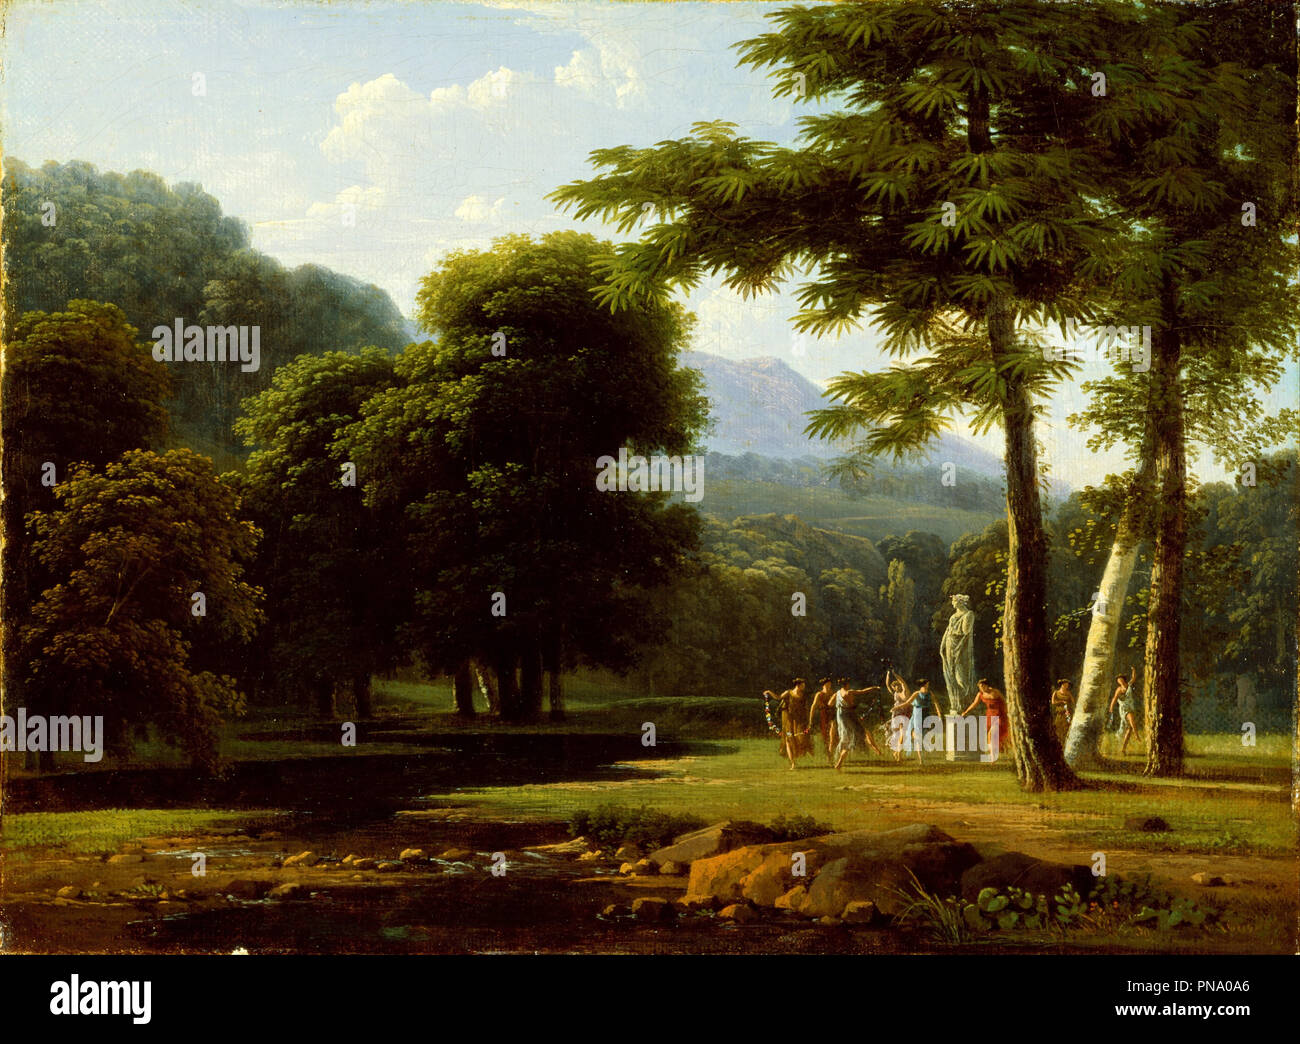 Landscape. Date/Period: 1804. Oil paintings. Oil on canvas. Author: BERTIN, JEAN VICTOR. Stock Photo